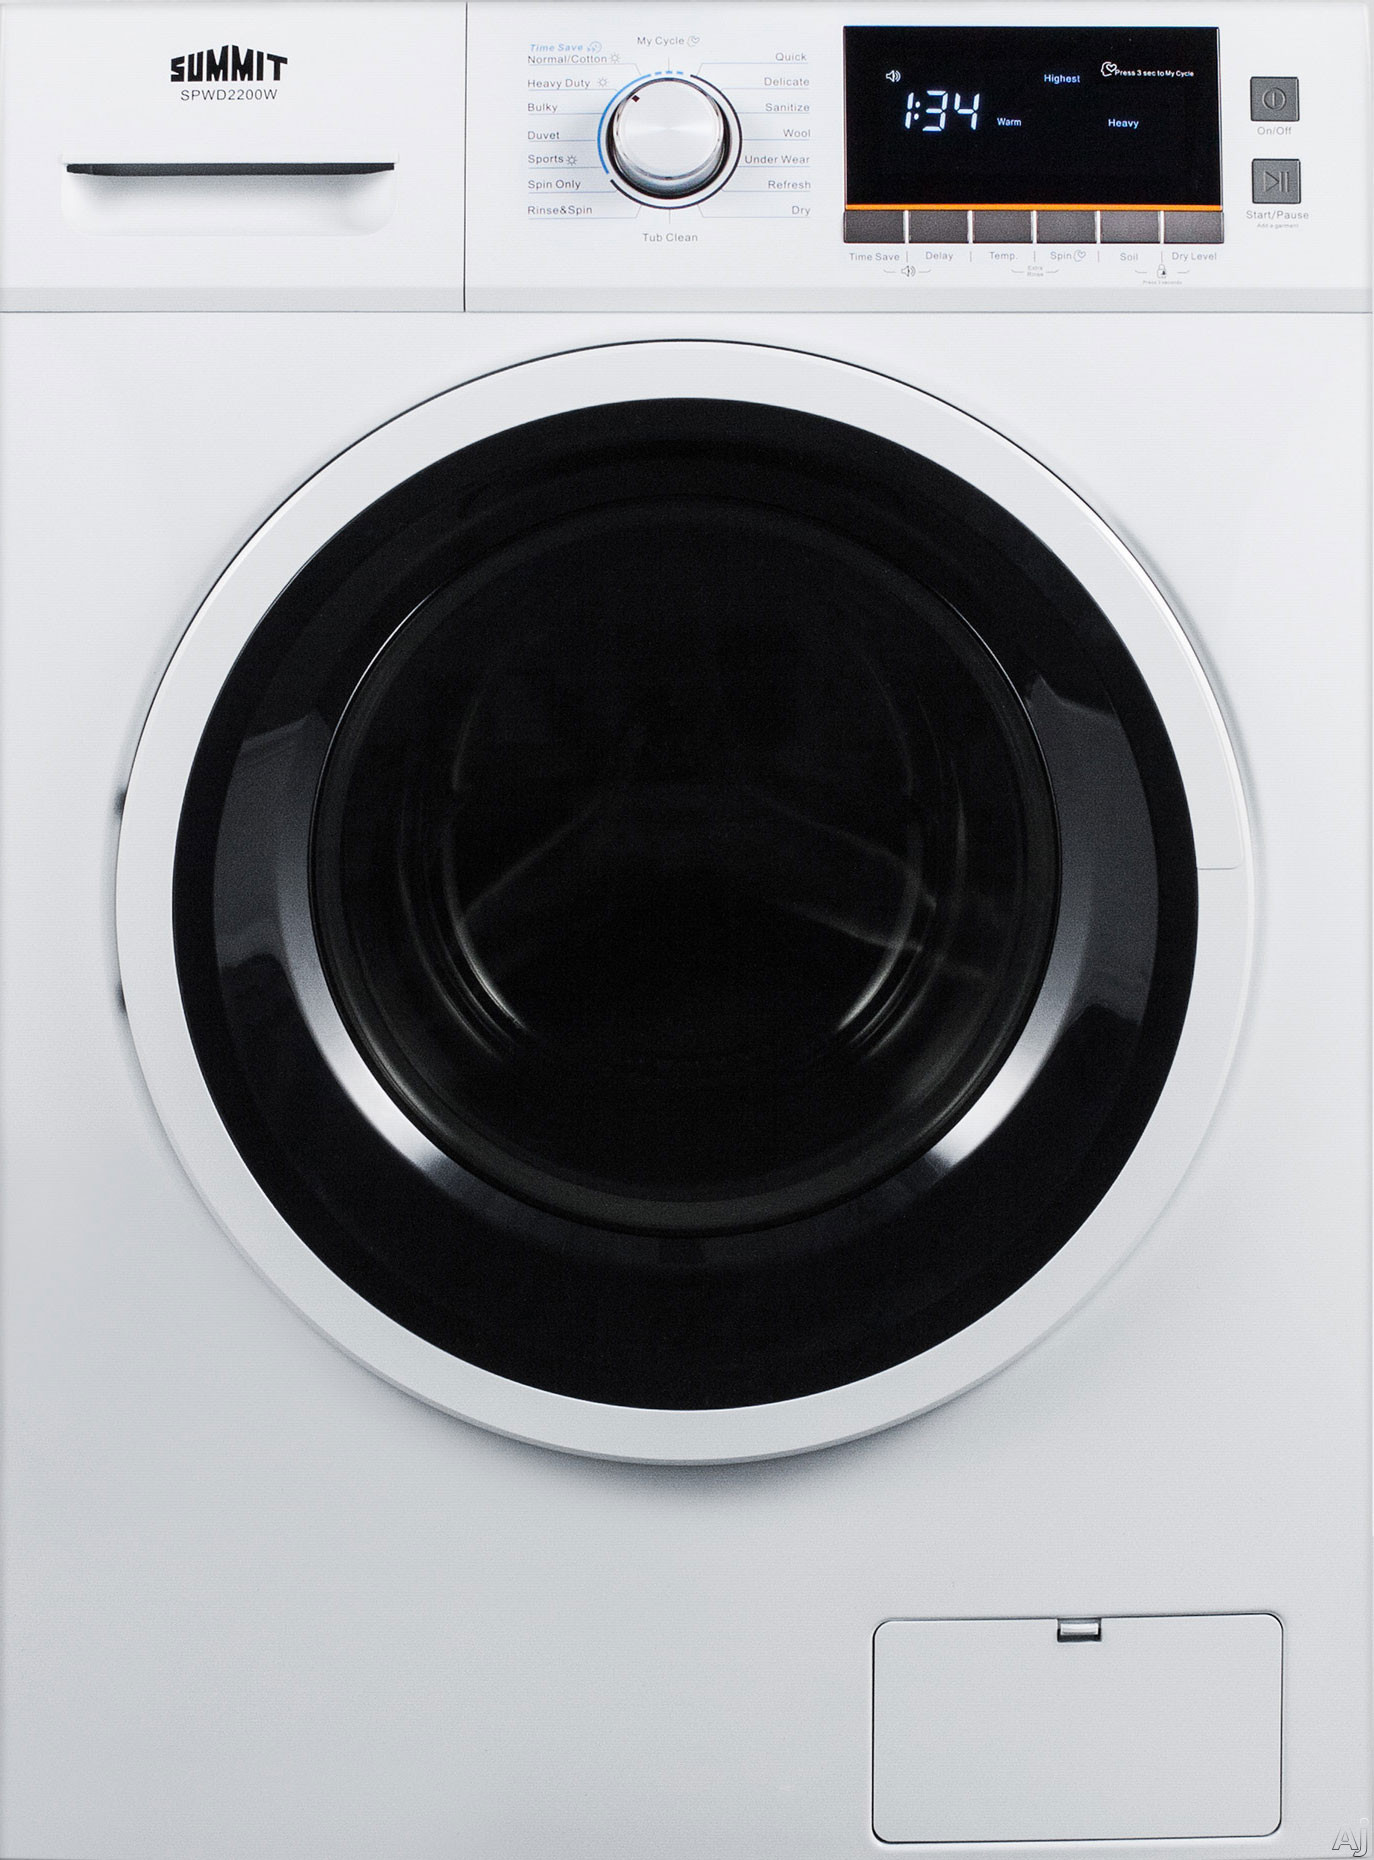 Picture of Summit SPWD2200W 24 Inch Front-Load Washer/Dryer Combo with 2.0 cu. ft. Capacity, 7 Wash Cycles, Sanitize Cycle, 4 Temperature Settings, 1,200 RPM Spi